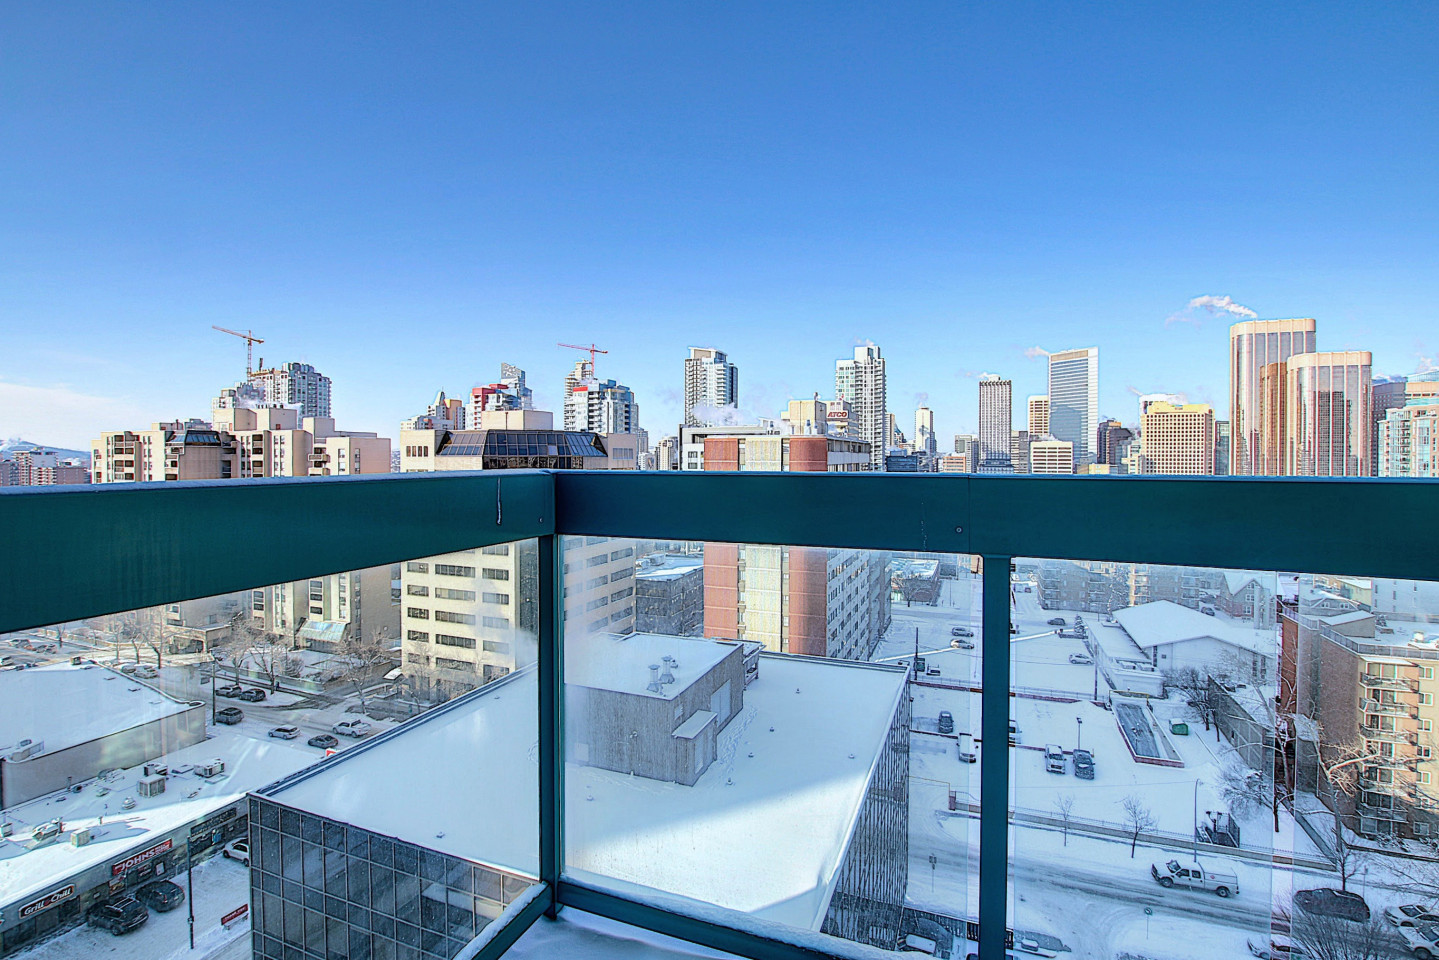 1407, 836 15 Avenue SW, Calgary, Alberta T2R 1S2, 2 Bedrooms Bedrooms, ,2 BathroomsBathrooms,Condo,For Rent,15 Avenue SW,1407,1109